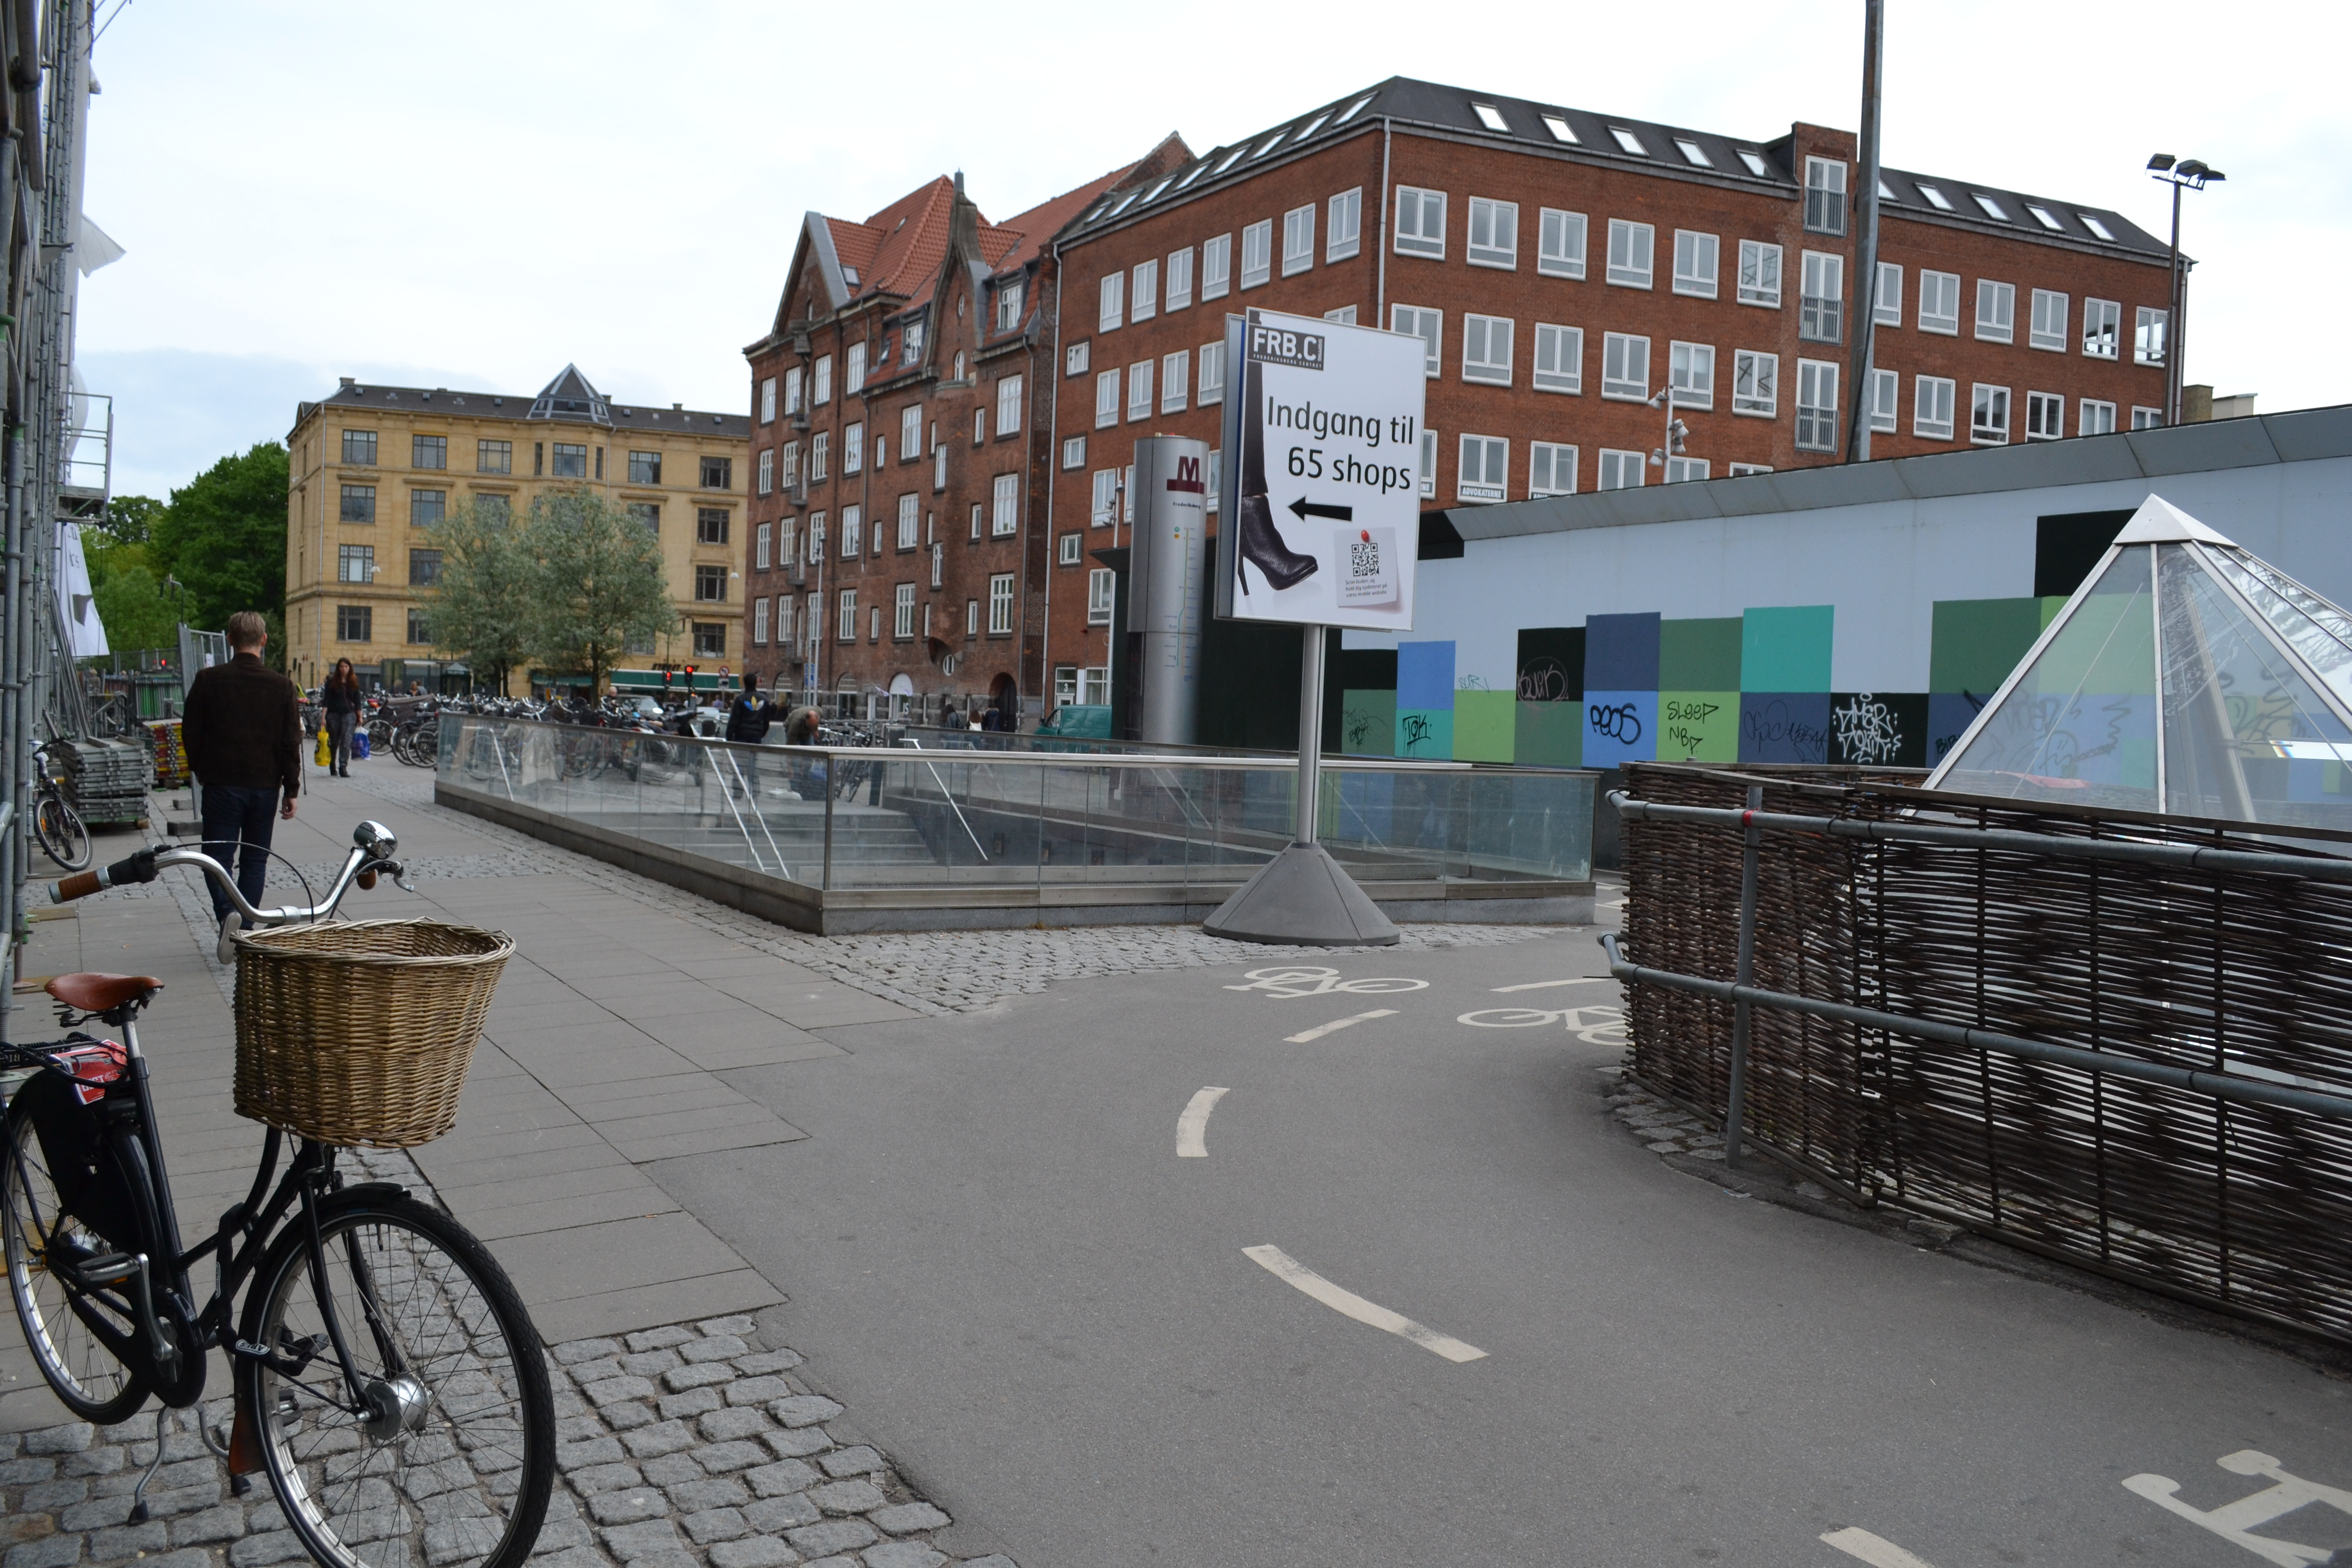 Bicycle lane in construction area